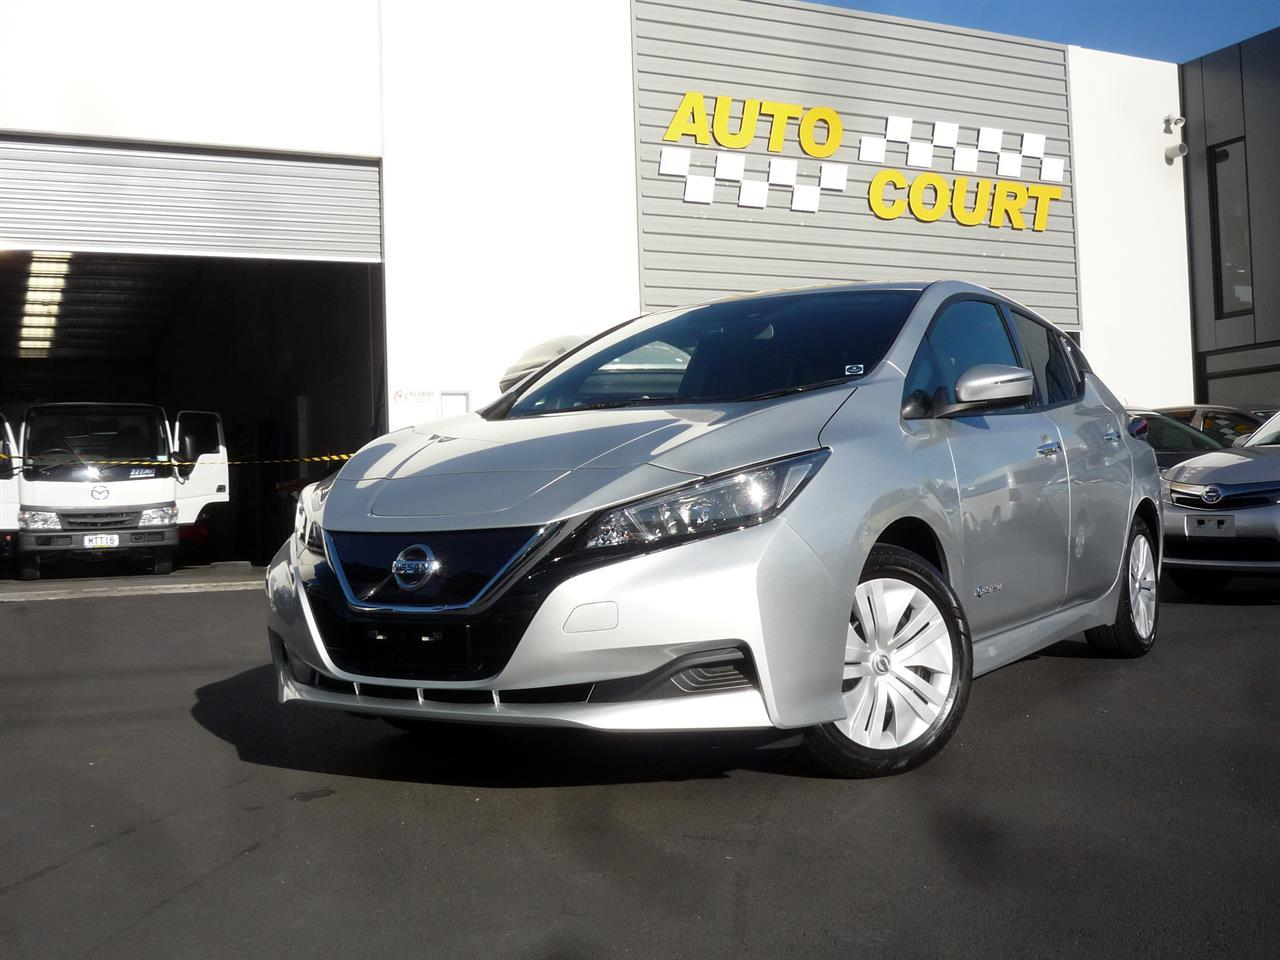 2018 nissan leaf 40x 40kw for sale in dunedin